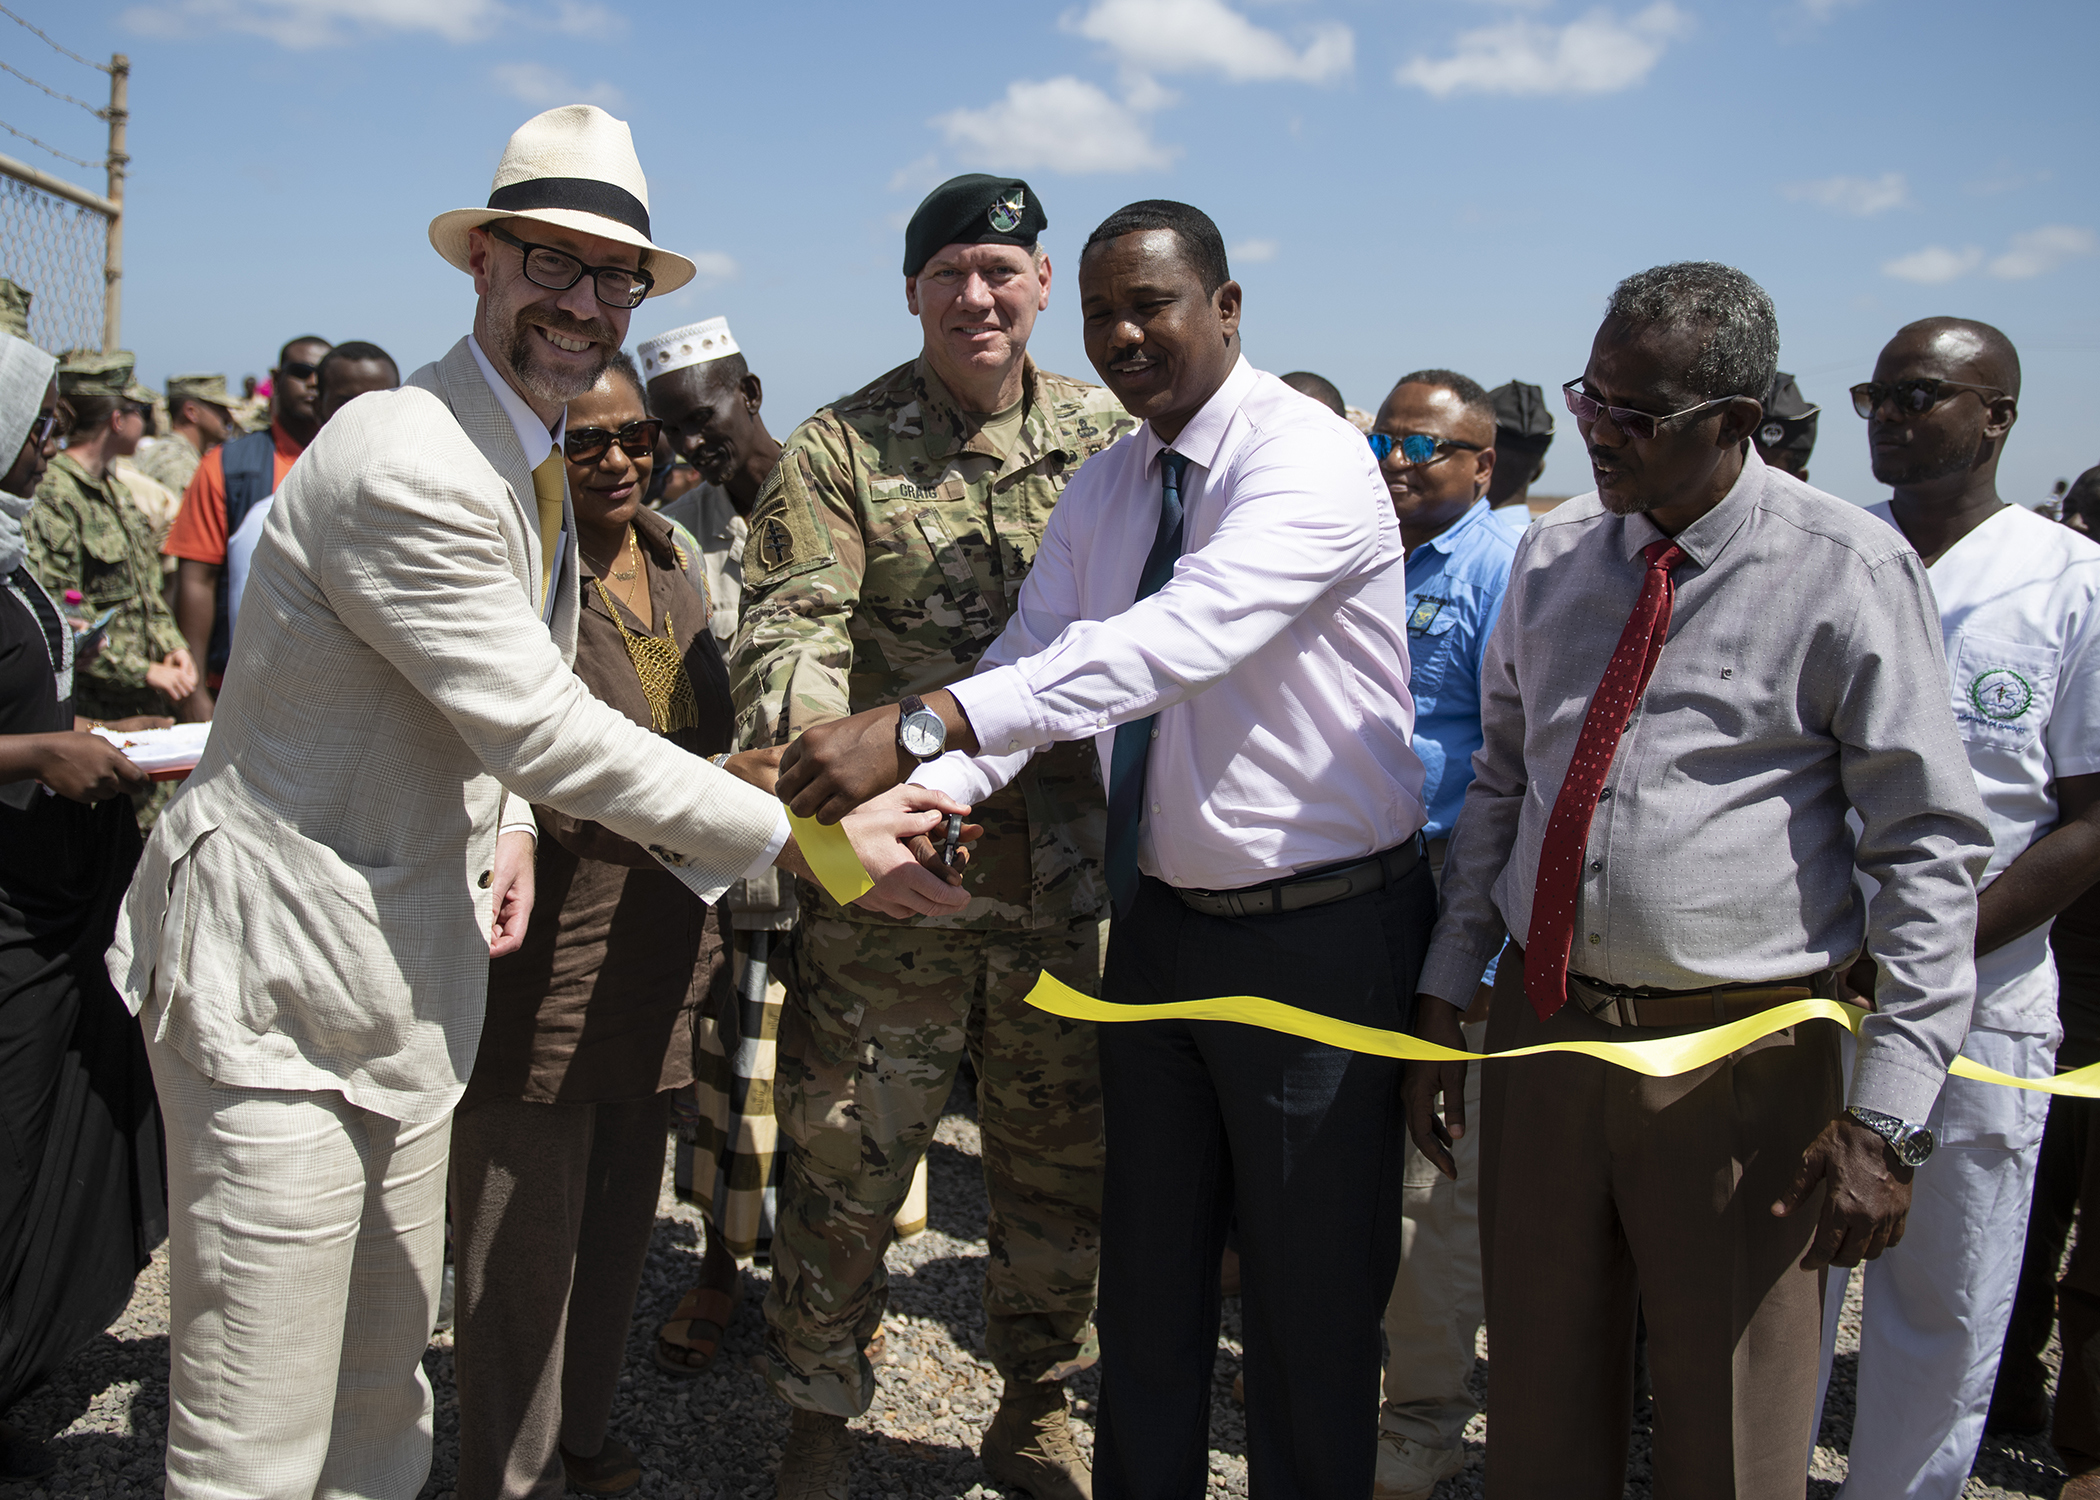 U.S. Djibouti Embassy officials, Combined Joint Task Force-Horn of Africa leadership, and Djiboutian government leaders cut the ribbon for the Ali Oune Medial Clinic during a ceremony in Ali Oune, Djibouti, Jan. 31, 2019. The clinic, which U.S. Navy Seabees from Naval Mobile Construction Battalion 1, assigned to CJTF-HOA, have been working to complete for five months, is intended to enhance the Ministry of Health for Djibouti's ability to provide basic medical, birth and after care to the Ali Oune village and its more than 1,000 residents and rural neighbors. (U.S. Air Force photo by Tech. Sgt. Shawn Nickel)